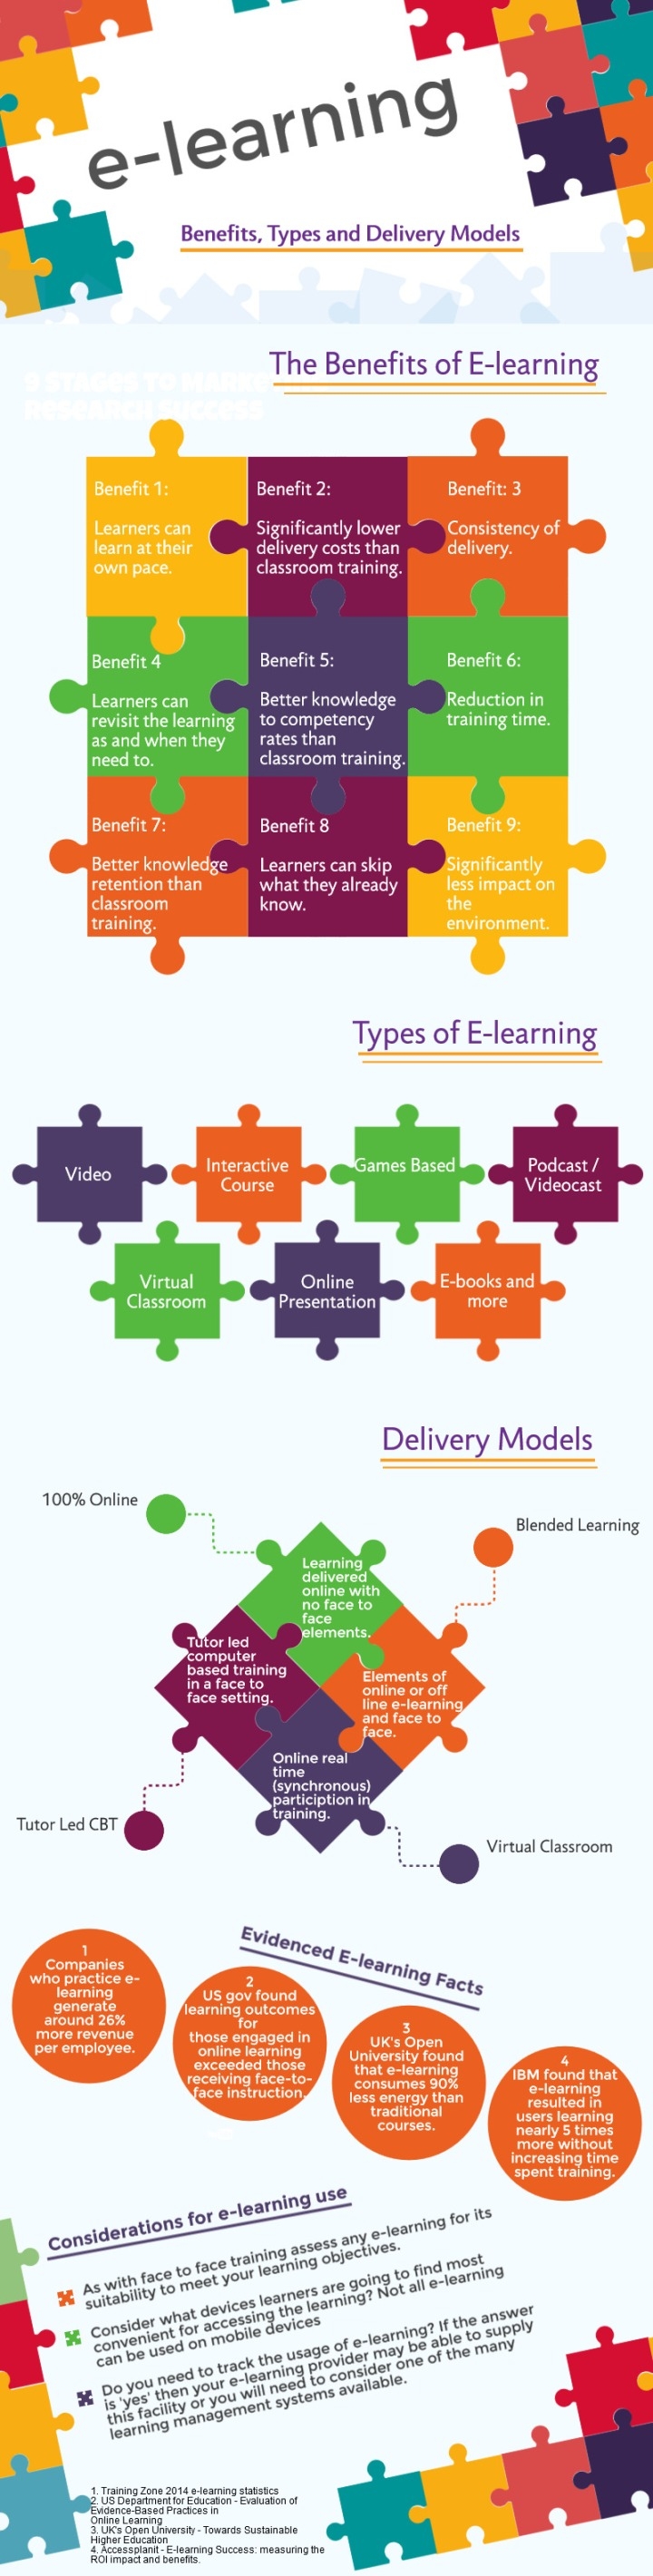 Elearning Marketplace what are the benefits of elearning